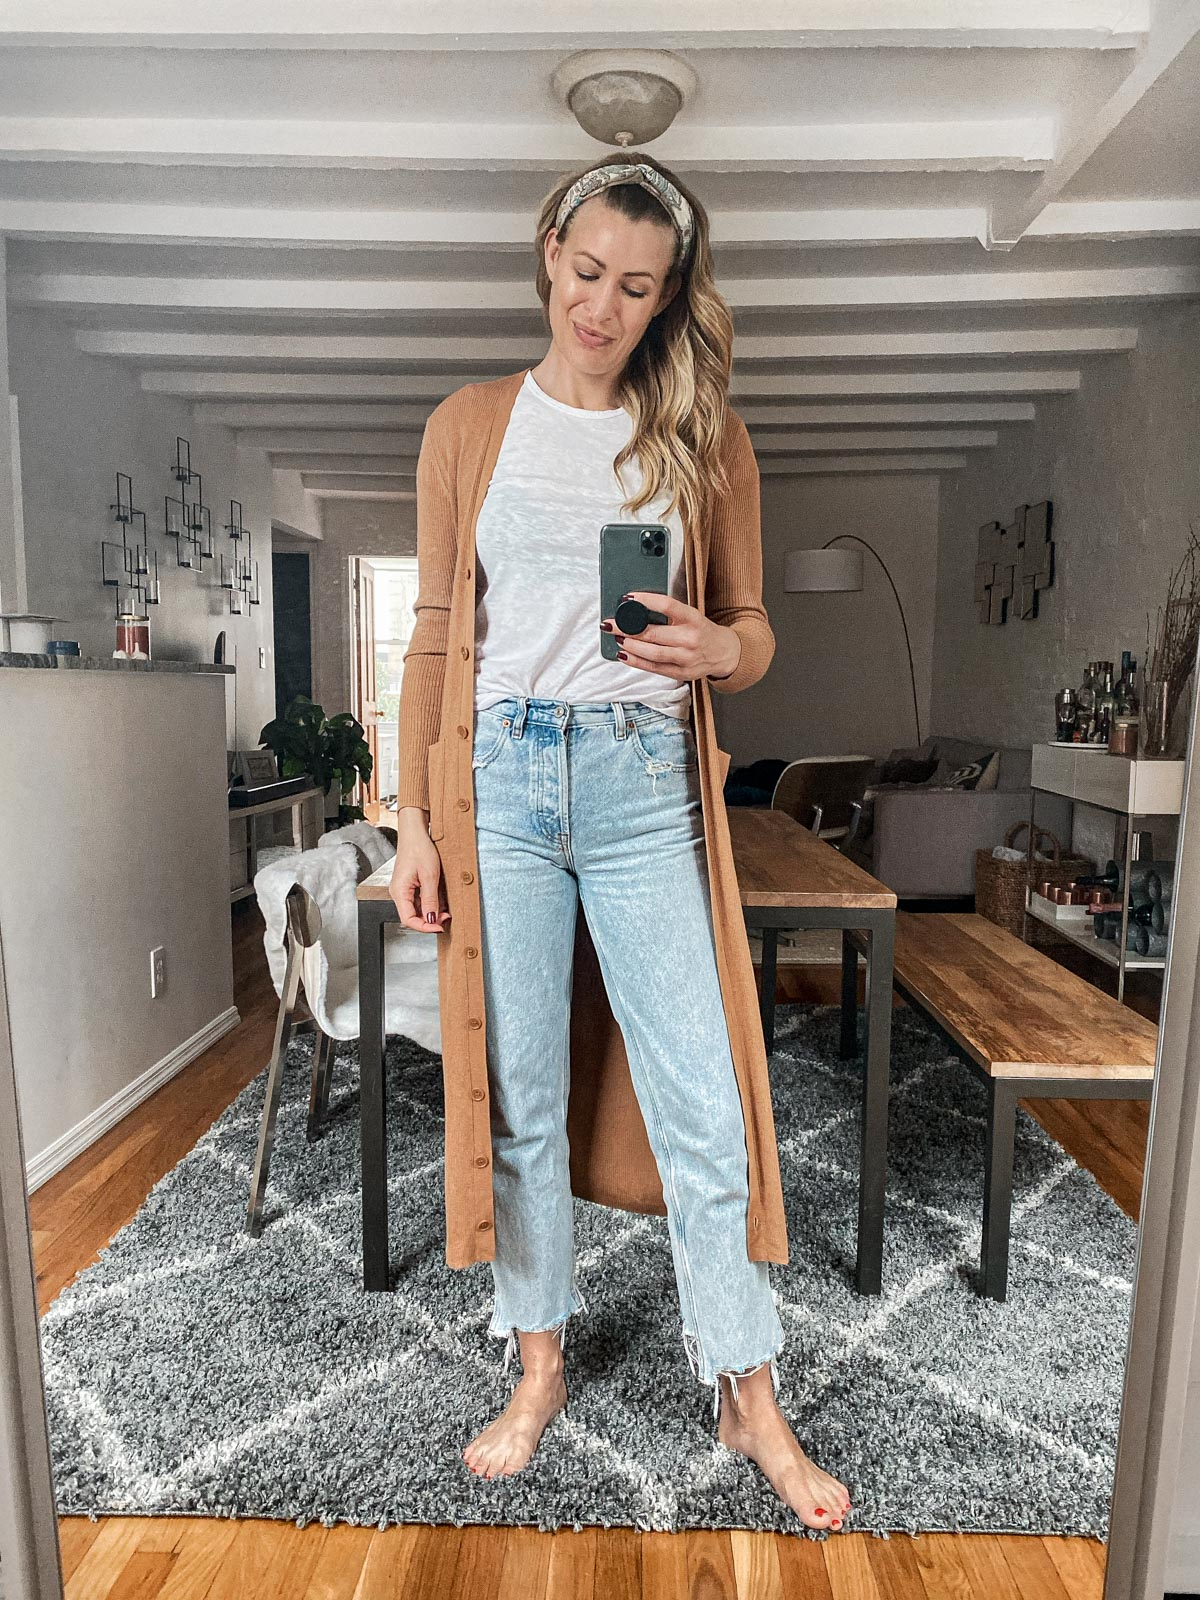 Laura Behnke The Life Actually Company What I Really Wore Abercrombie jeans, Naadam Cardigan